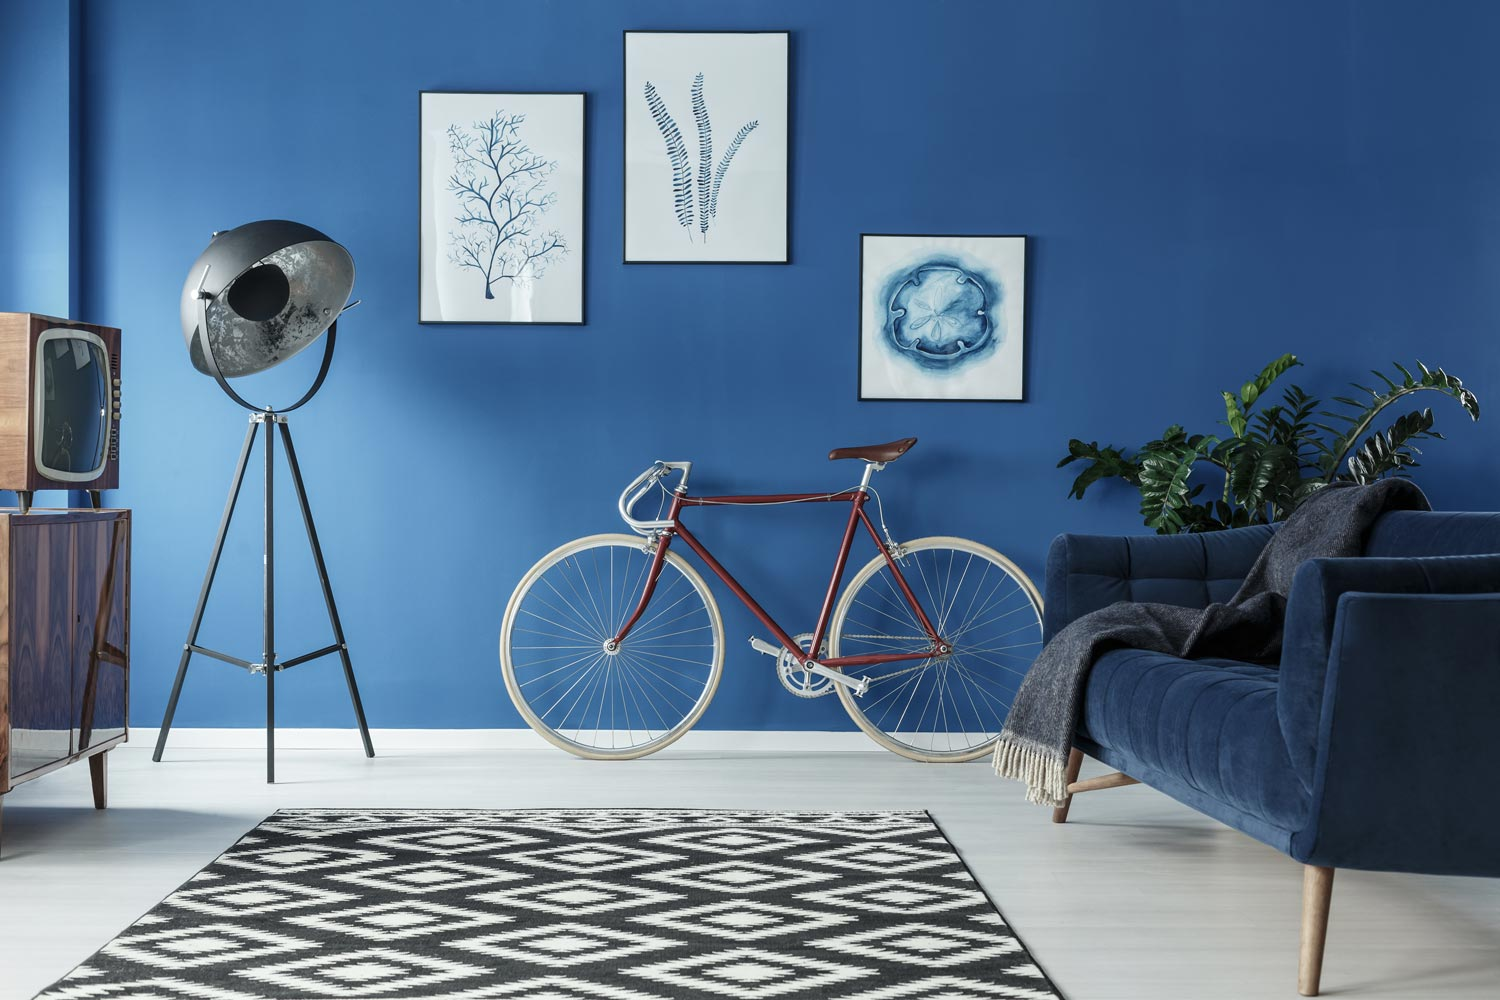 A modern living room interior in blue paint wall and bicycle and vintage lamps and TV sets on the white floor with the black and white pattern carpet and suede blue couch with the grey throws